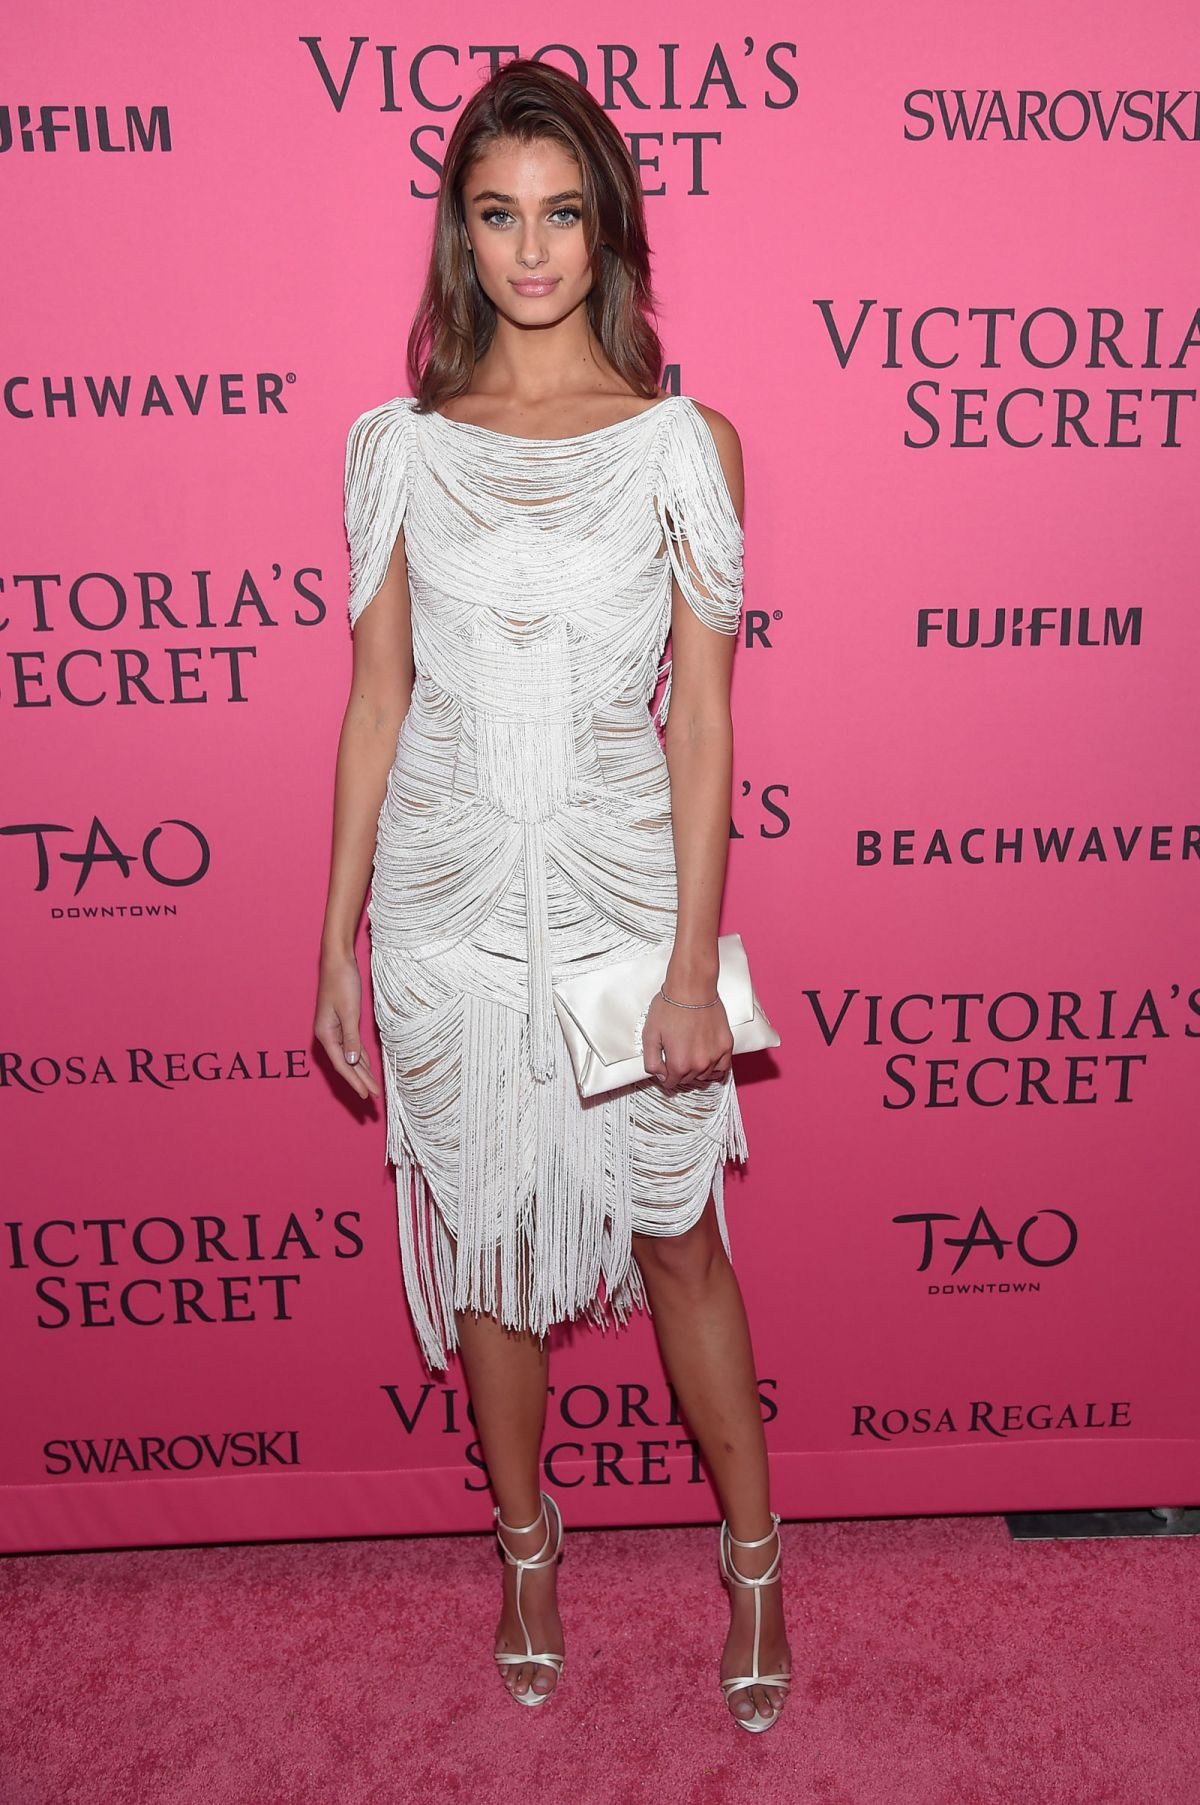 TAYLOR HILL at Victoria's Secret 2015 Fashion Show After Party 11/10/2015